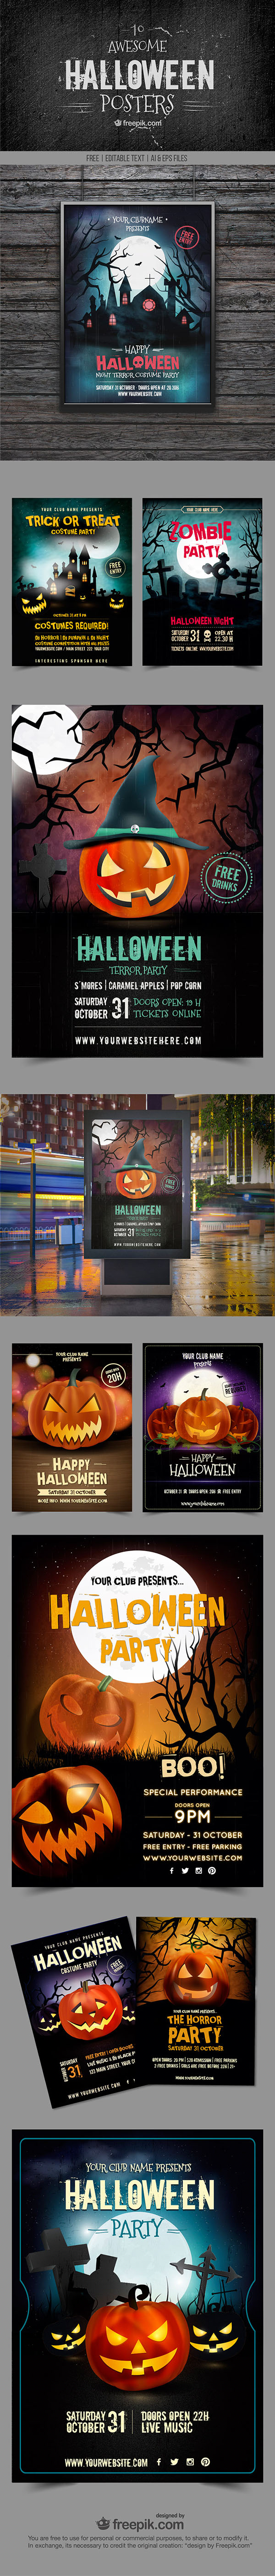 Cover Halloween posters